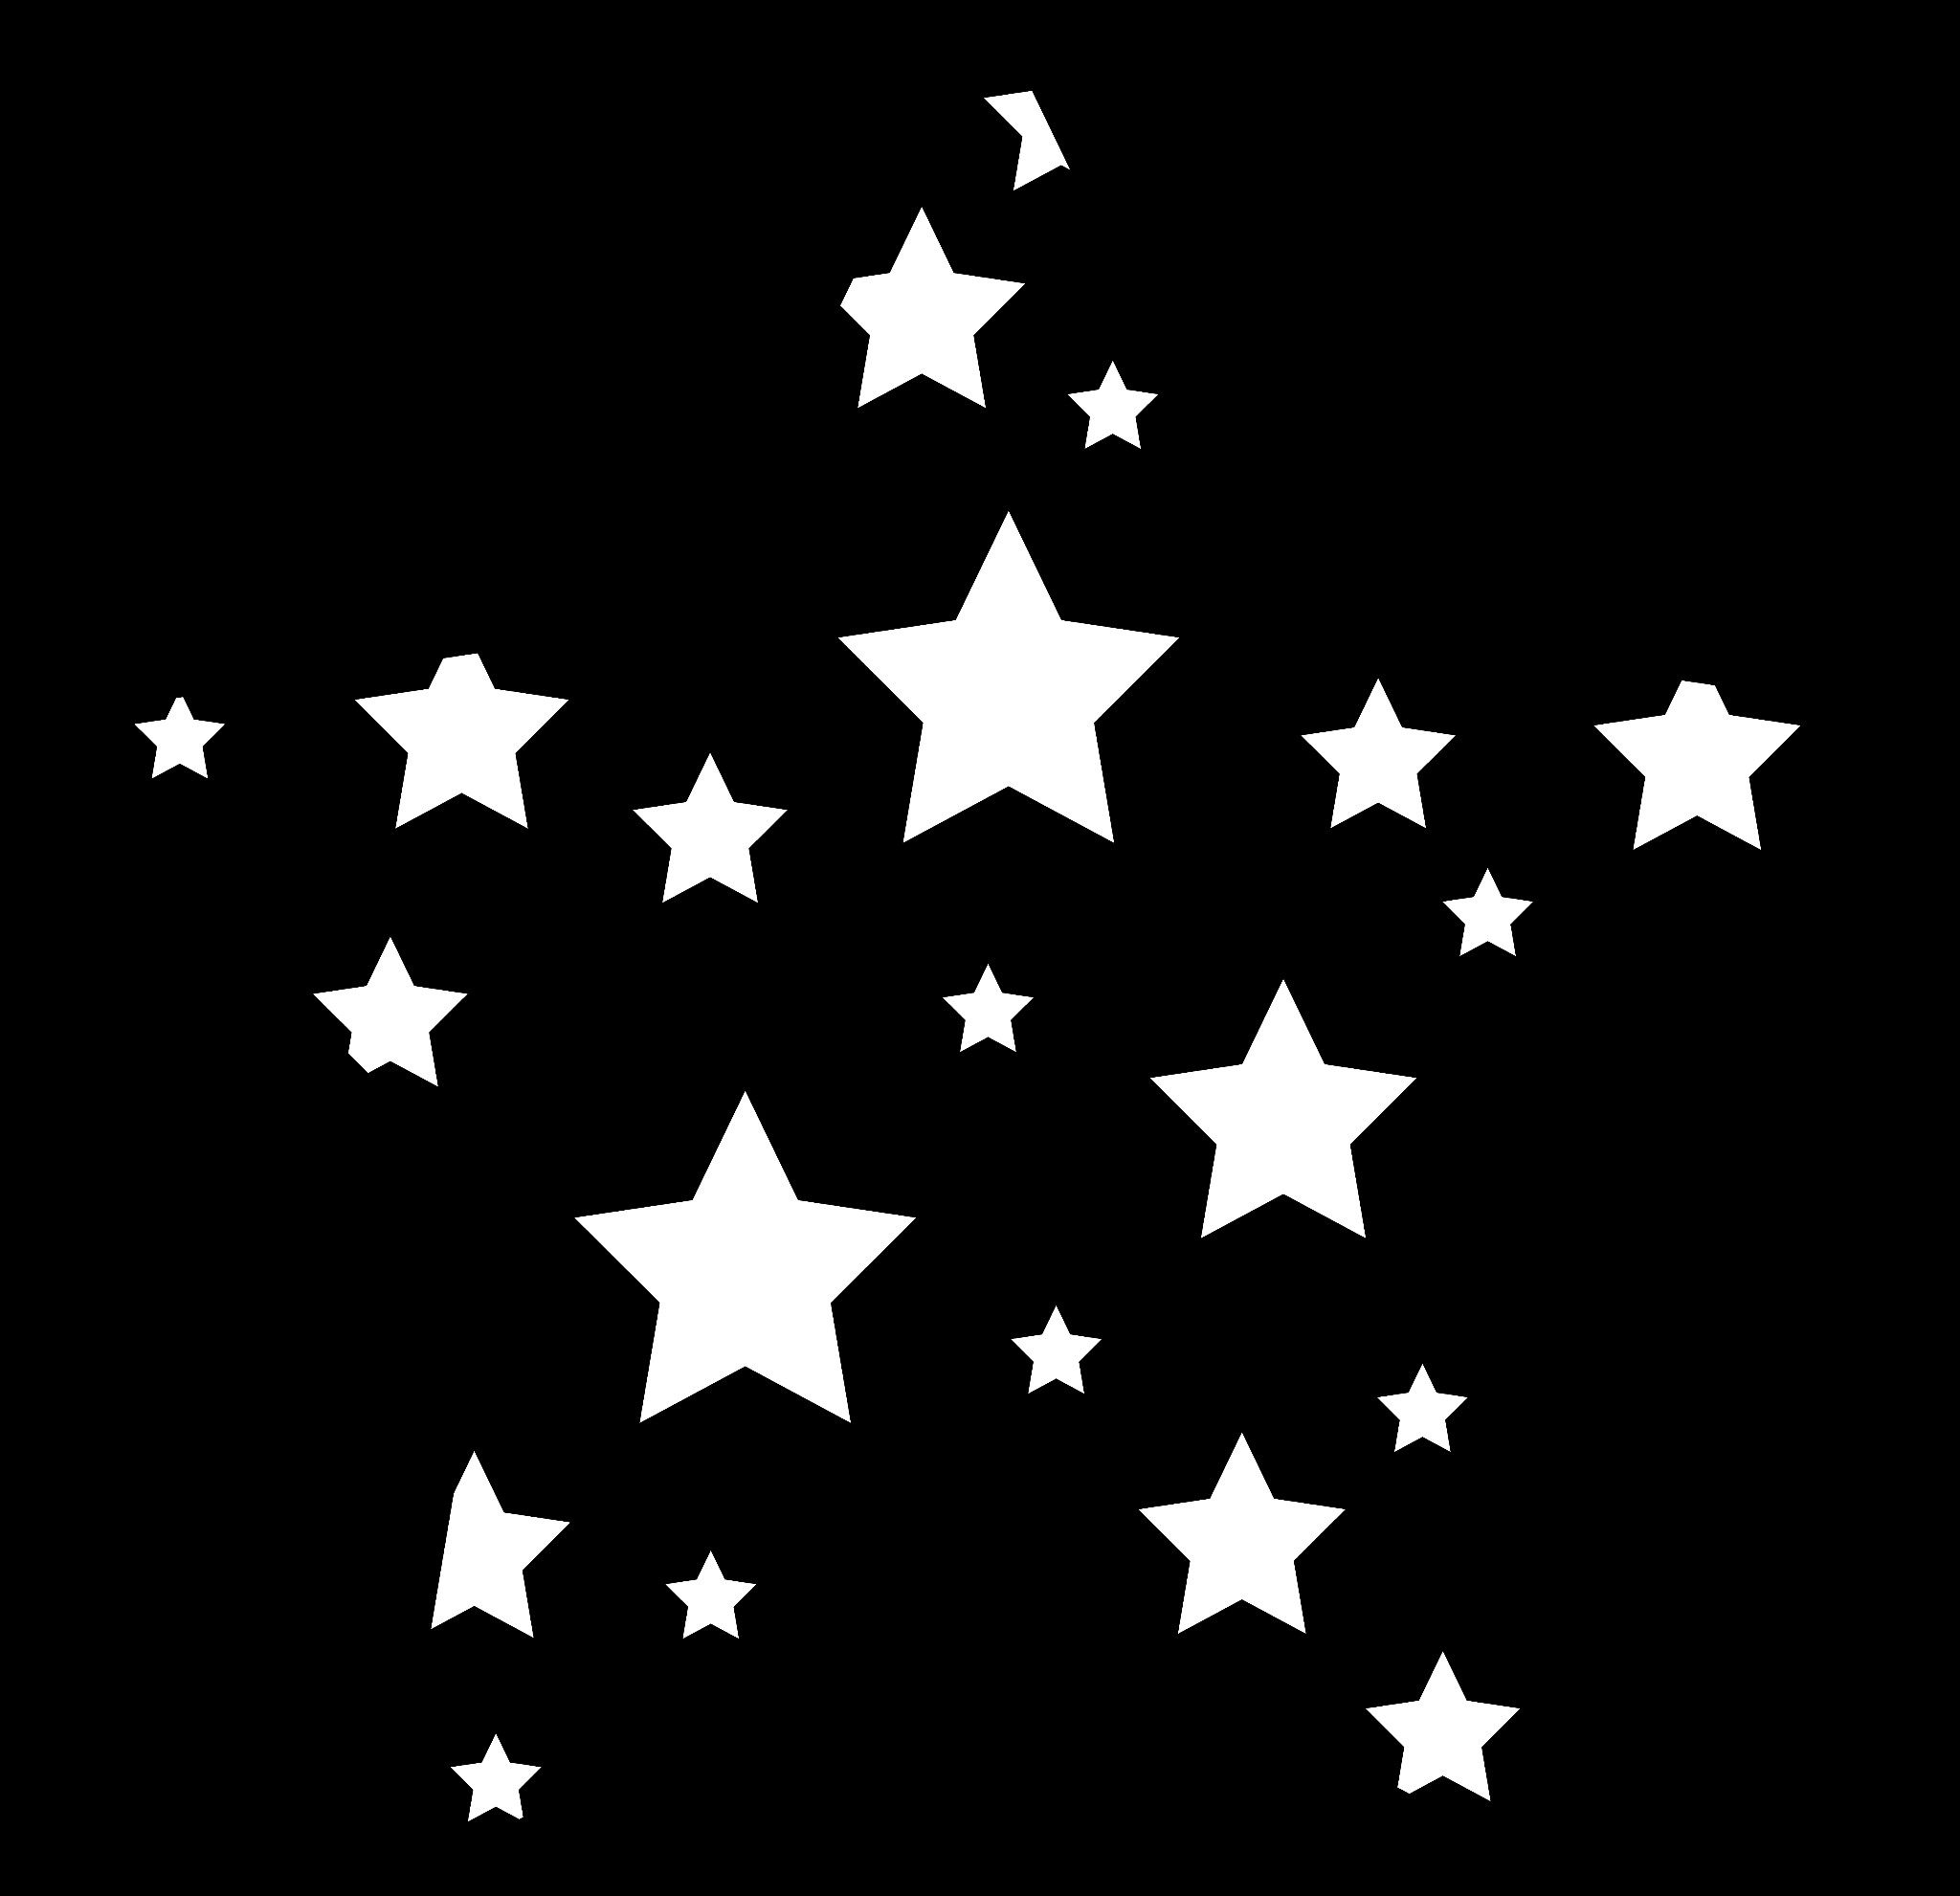 Starry Sky Clipart Black And White Shooting stars clipart